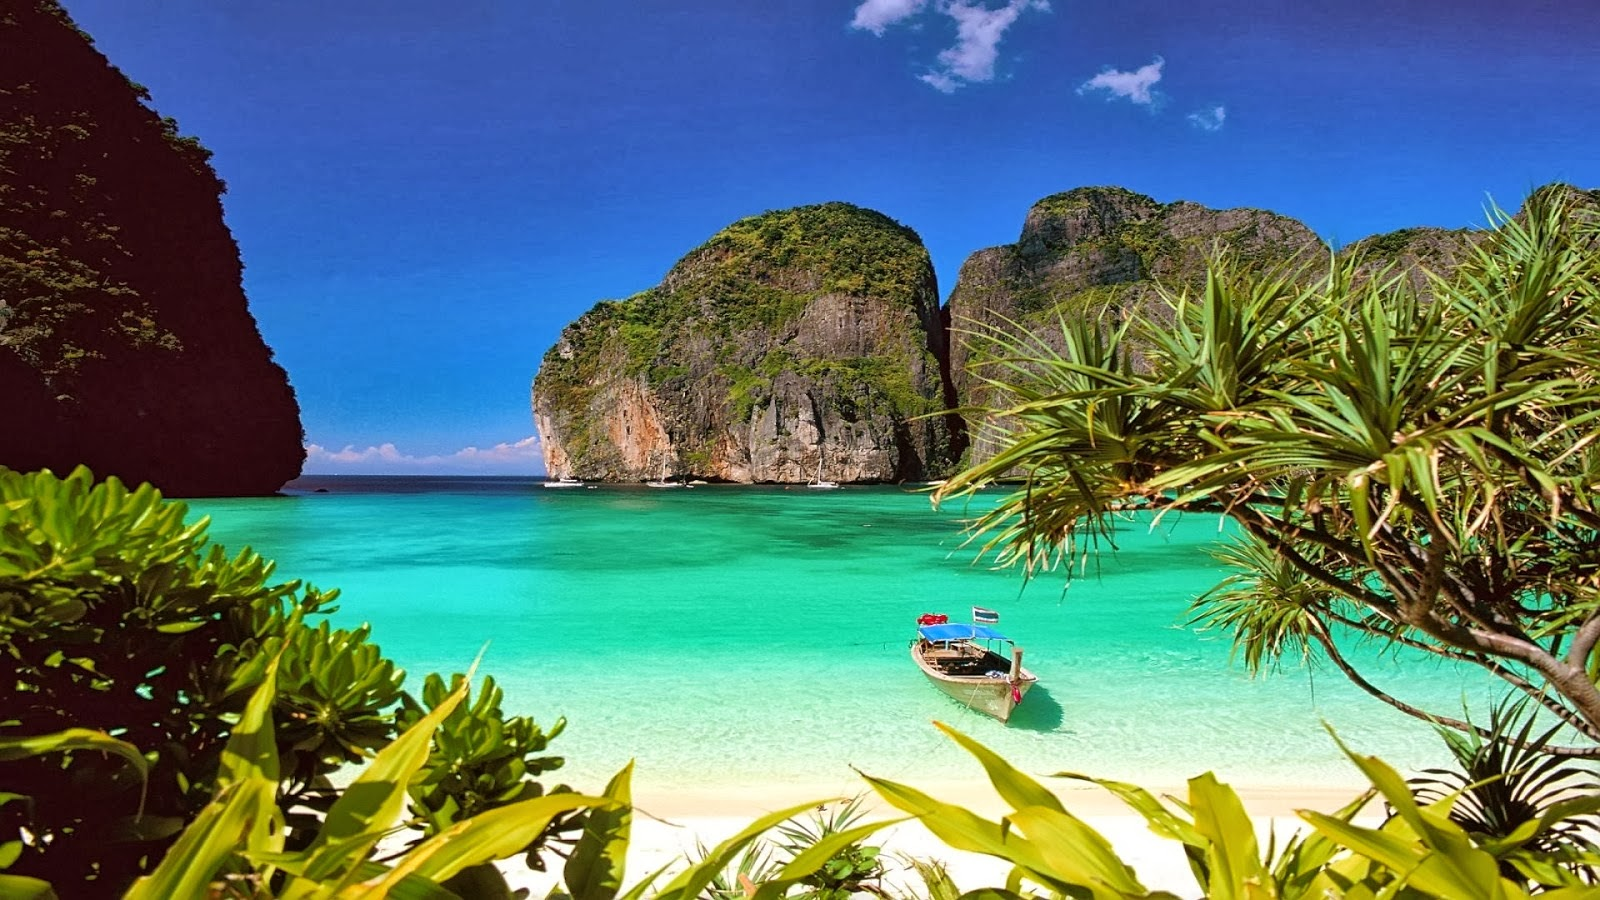 HD WALLPAPERS: Download Thailand Beach HD Wallpapers